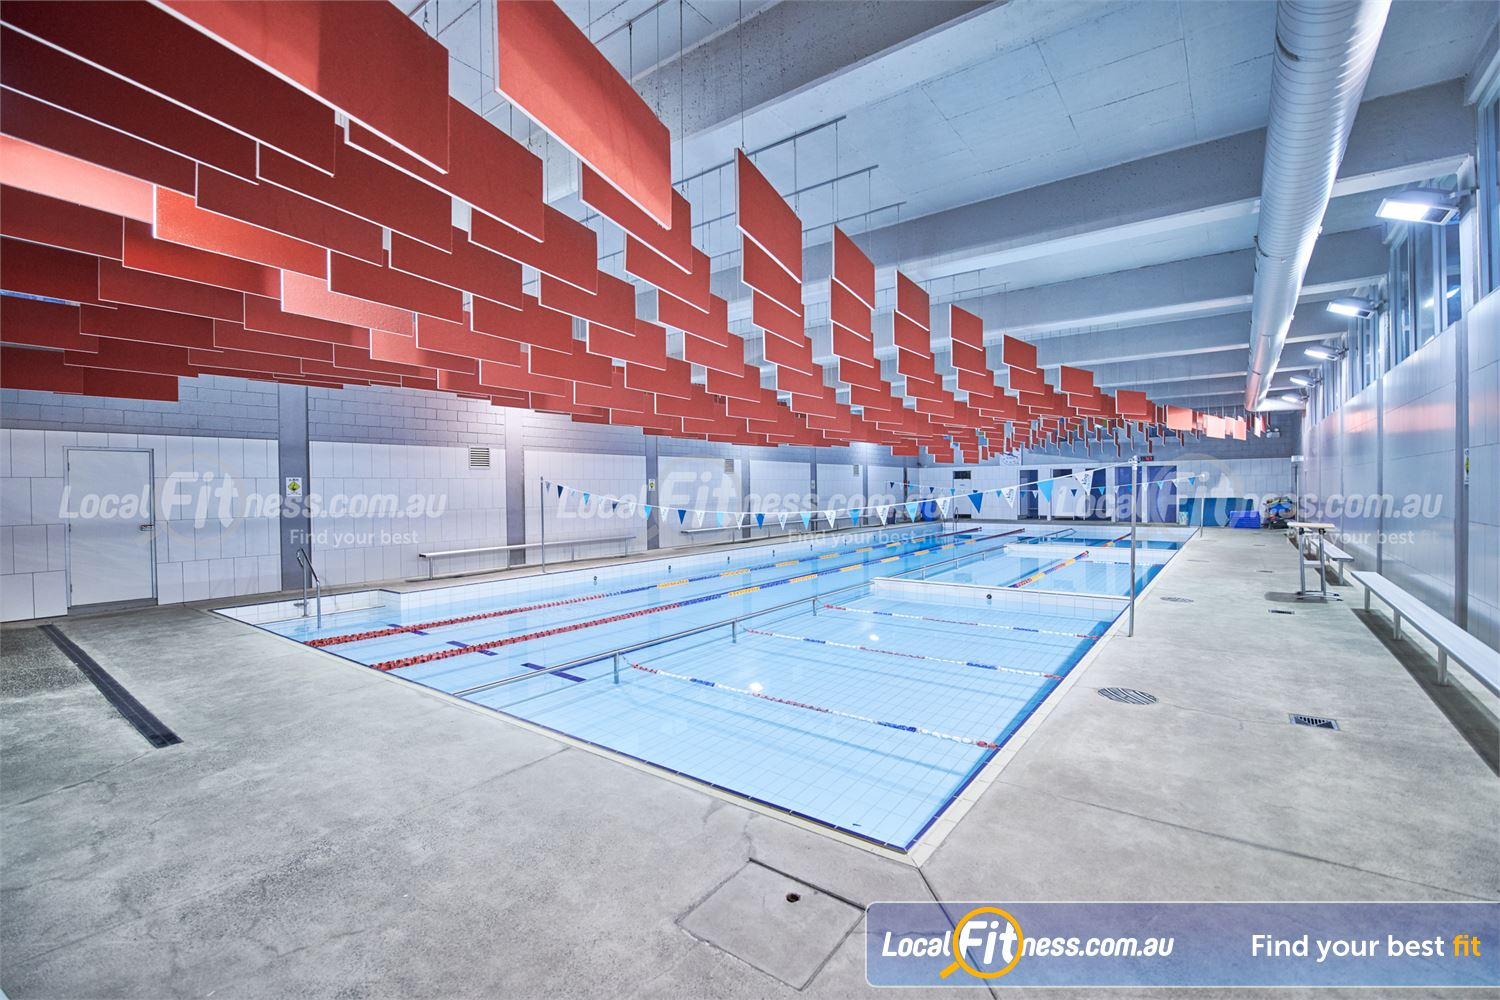 Fitness first st kilda gym free 1 day trial free 1 day - Fitness first gyms with swimming pools ...